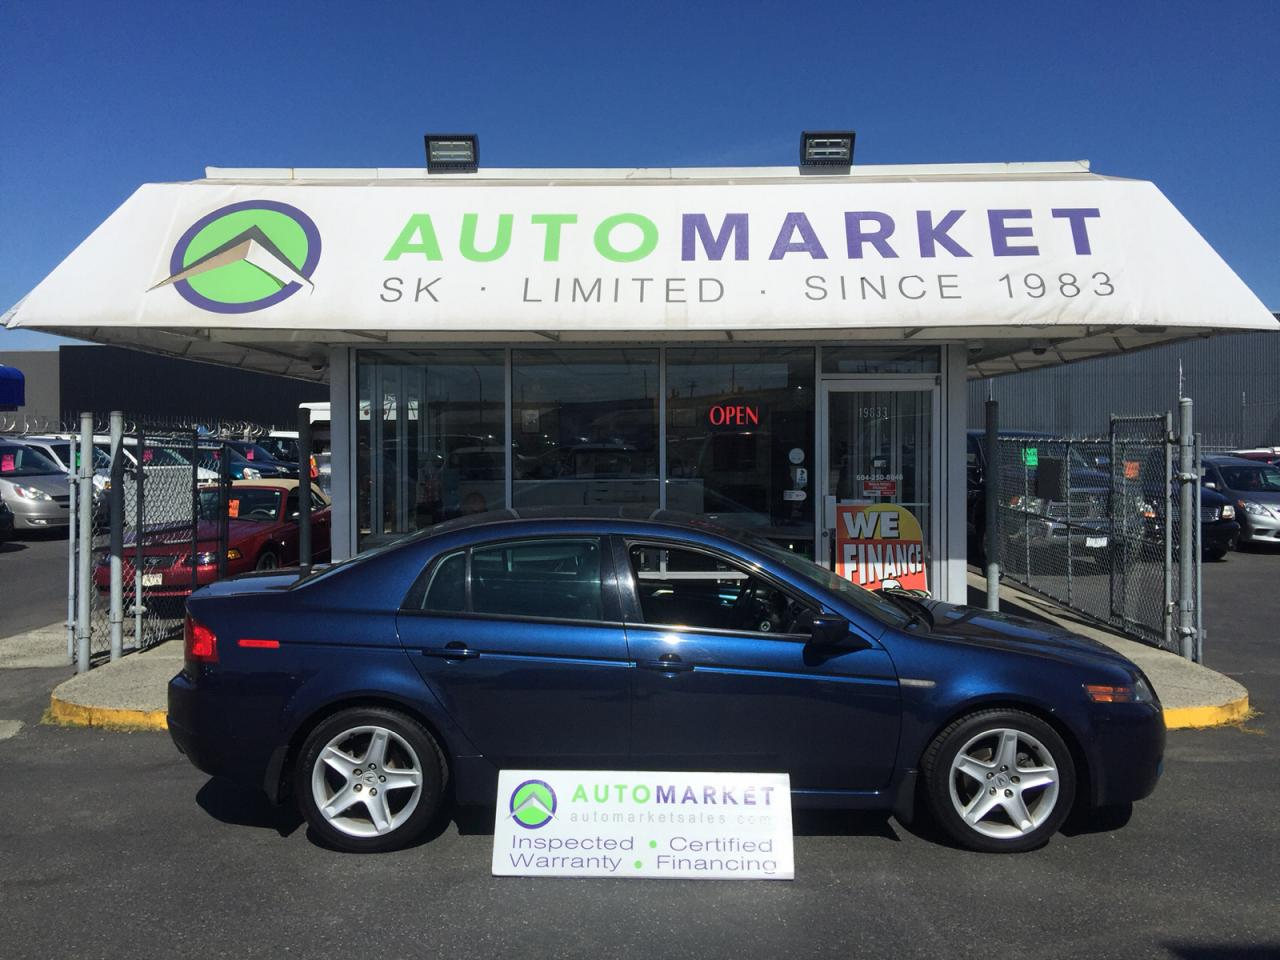 Used Acura TL LOADED LEATHER SUNROOF For Sale In Langley - 2004 acura tl used for sale